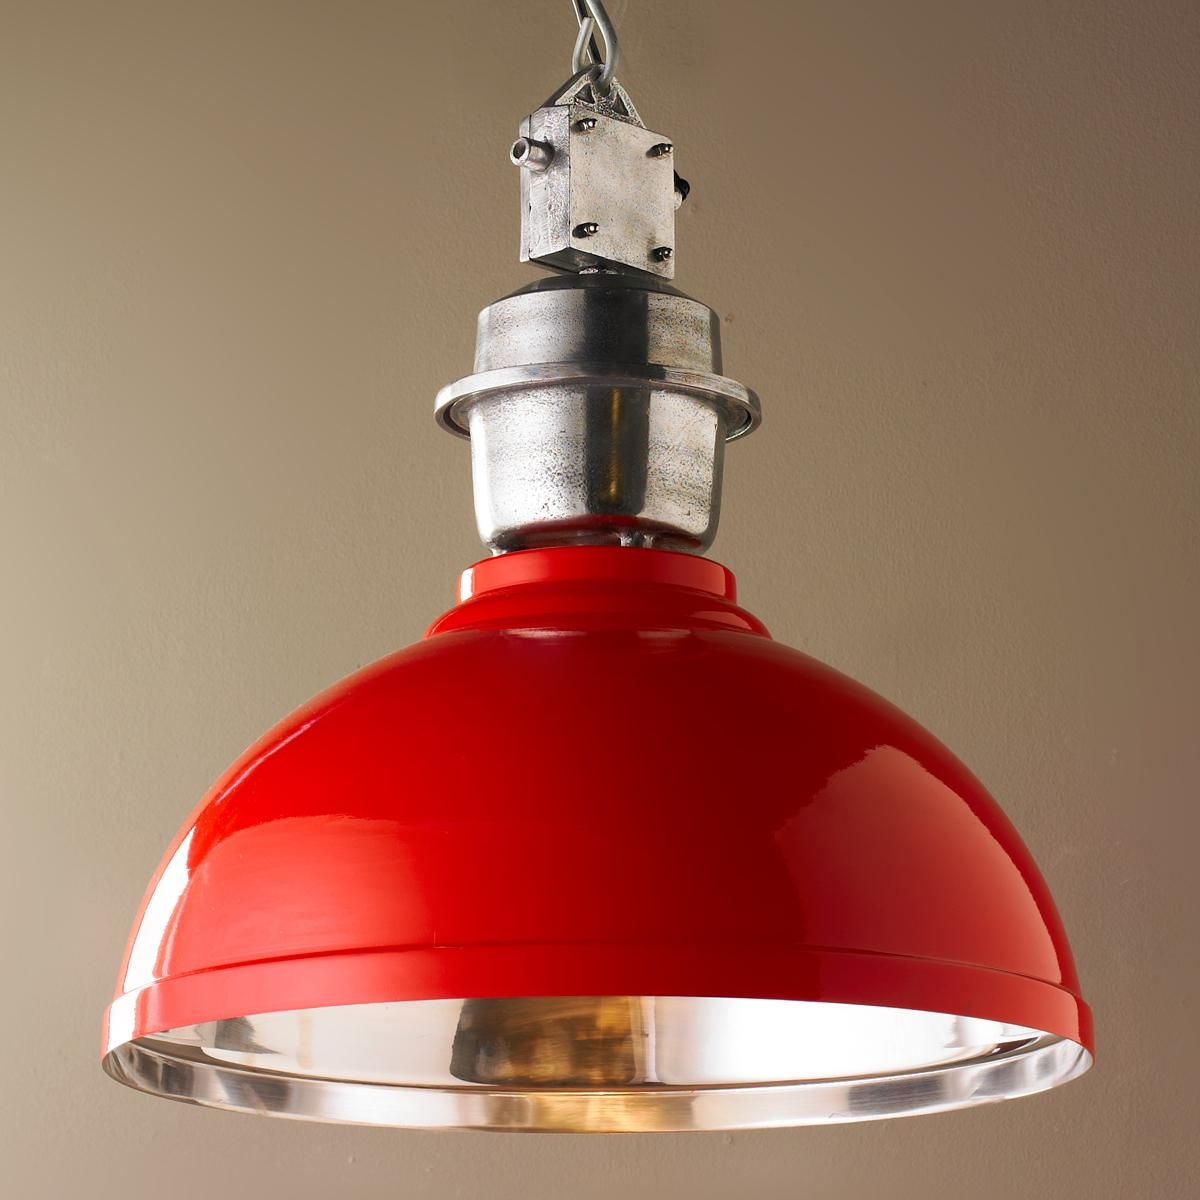 Industrial enameled shade warehouse pendant large red for Industrial bulb pendant